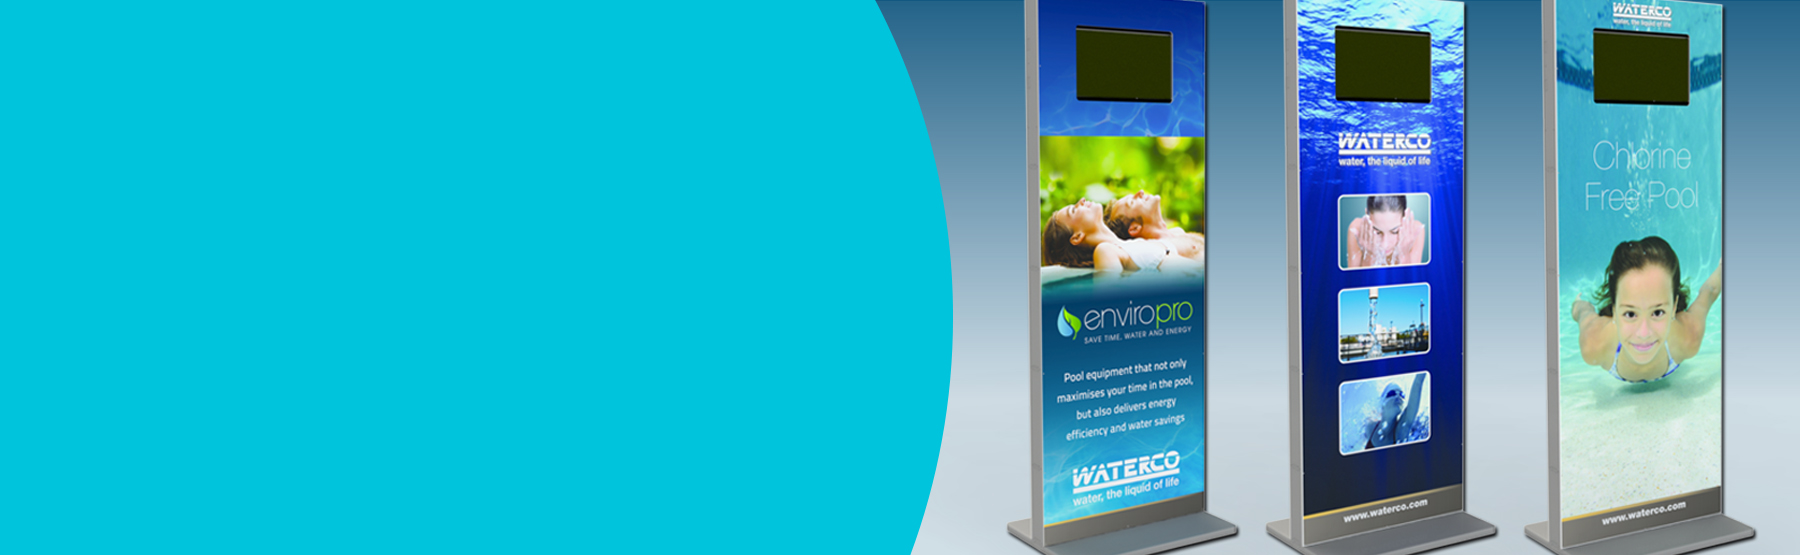 pos-displays-waterco-banner